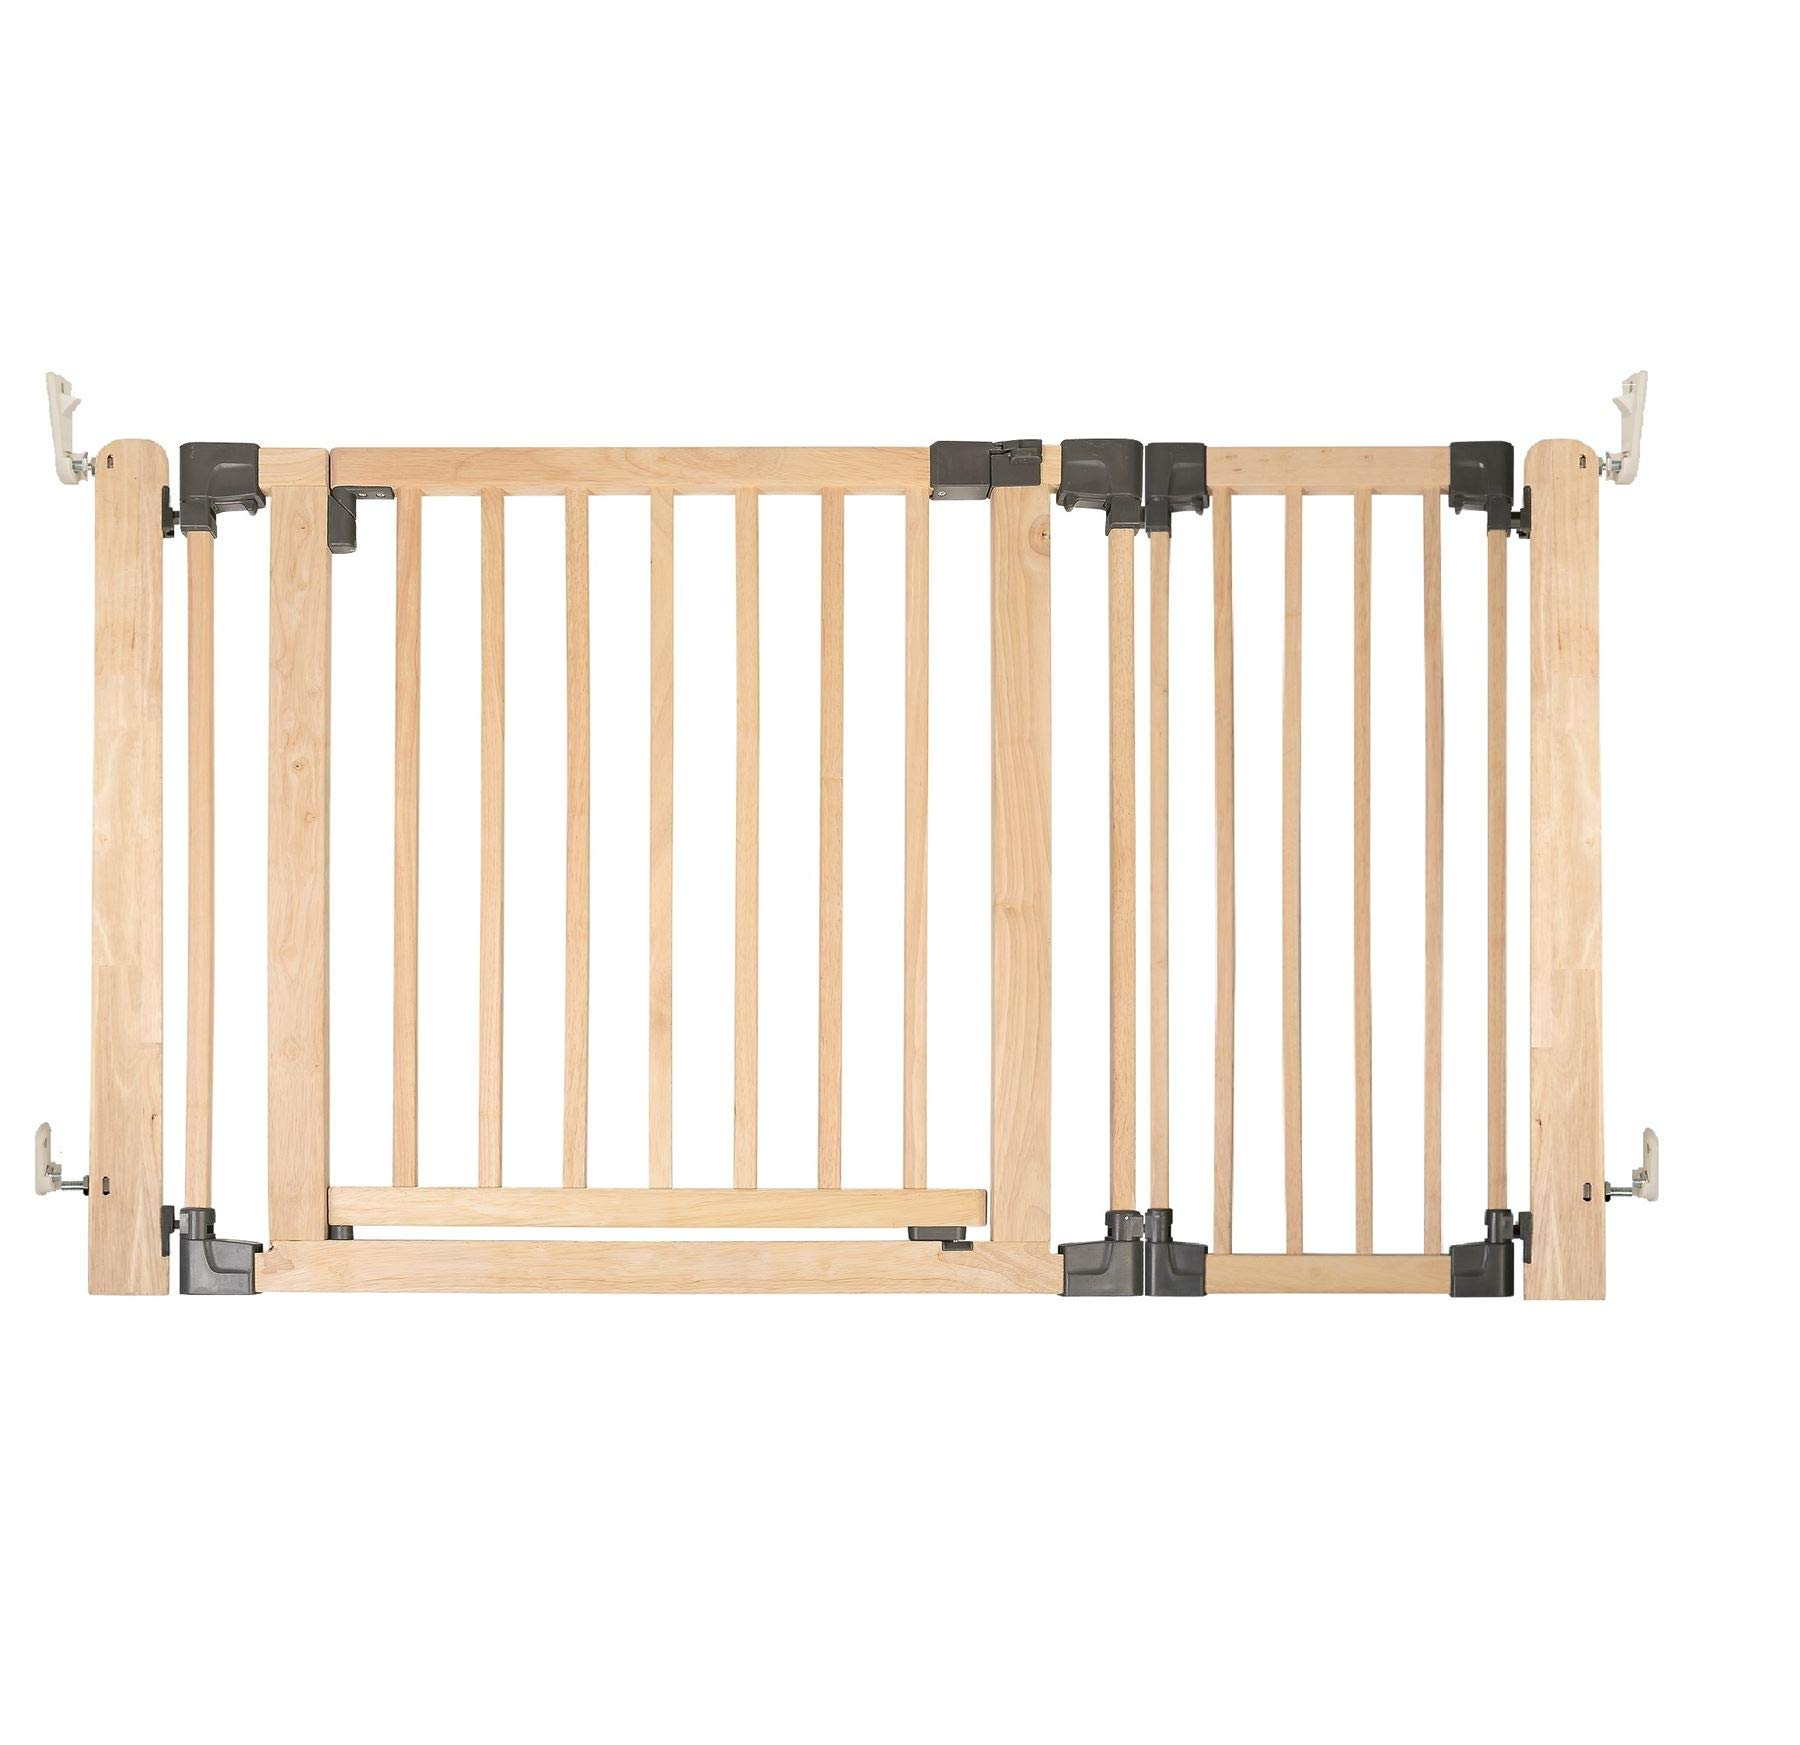 Safetots Wooden Multi Panel Room Divider Up to 136.5CM Safetots Made from premium grade wood designed to compliment all home interiors Each panel can be angled as required to make custom fit room dividing configurations This configuration comes complete with a wall mounting kit, one 80cm gate panel and one 40cm extension panel. 1